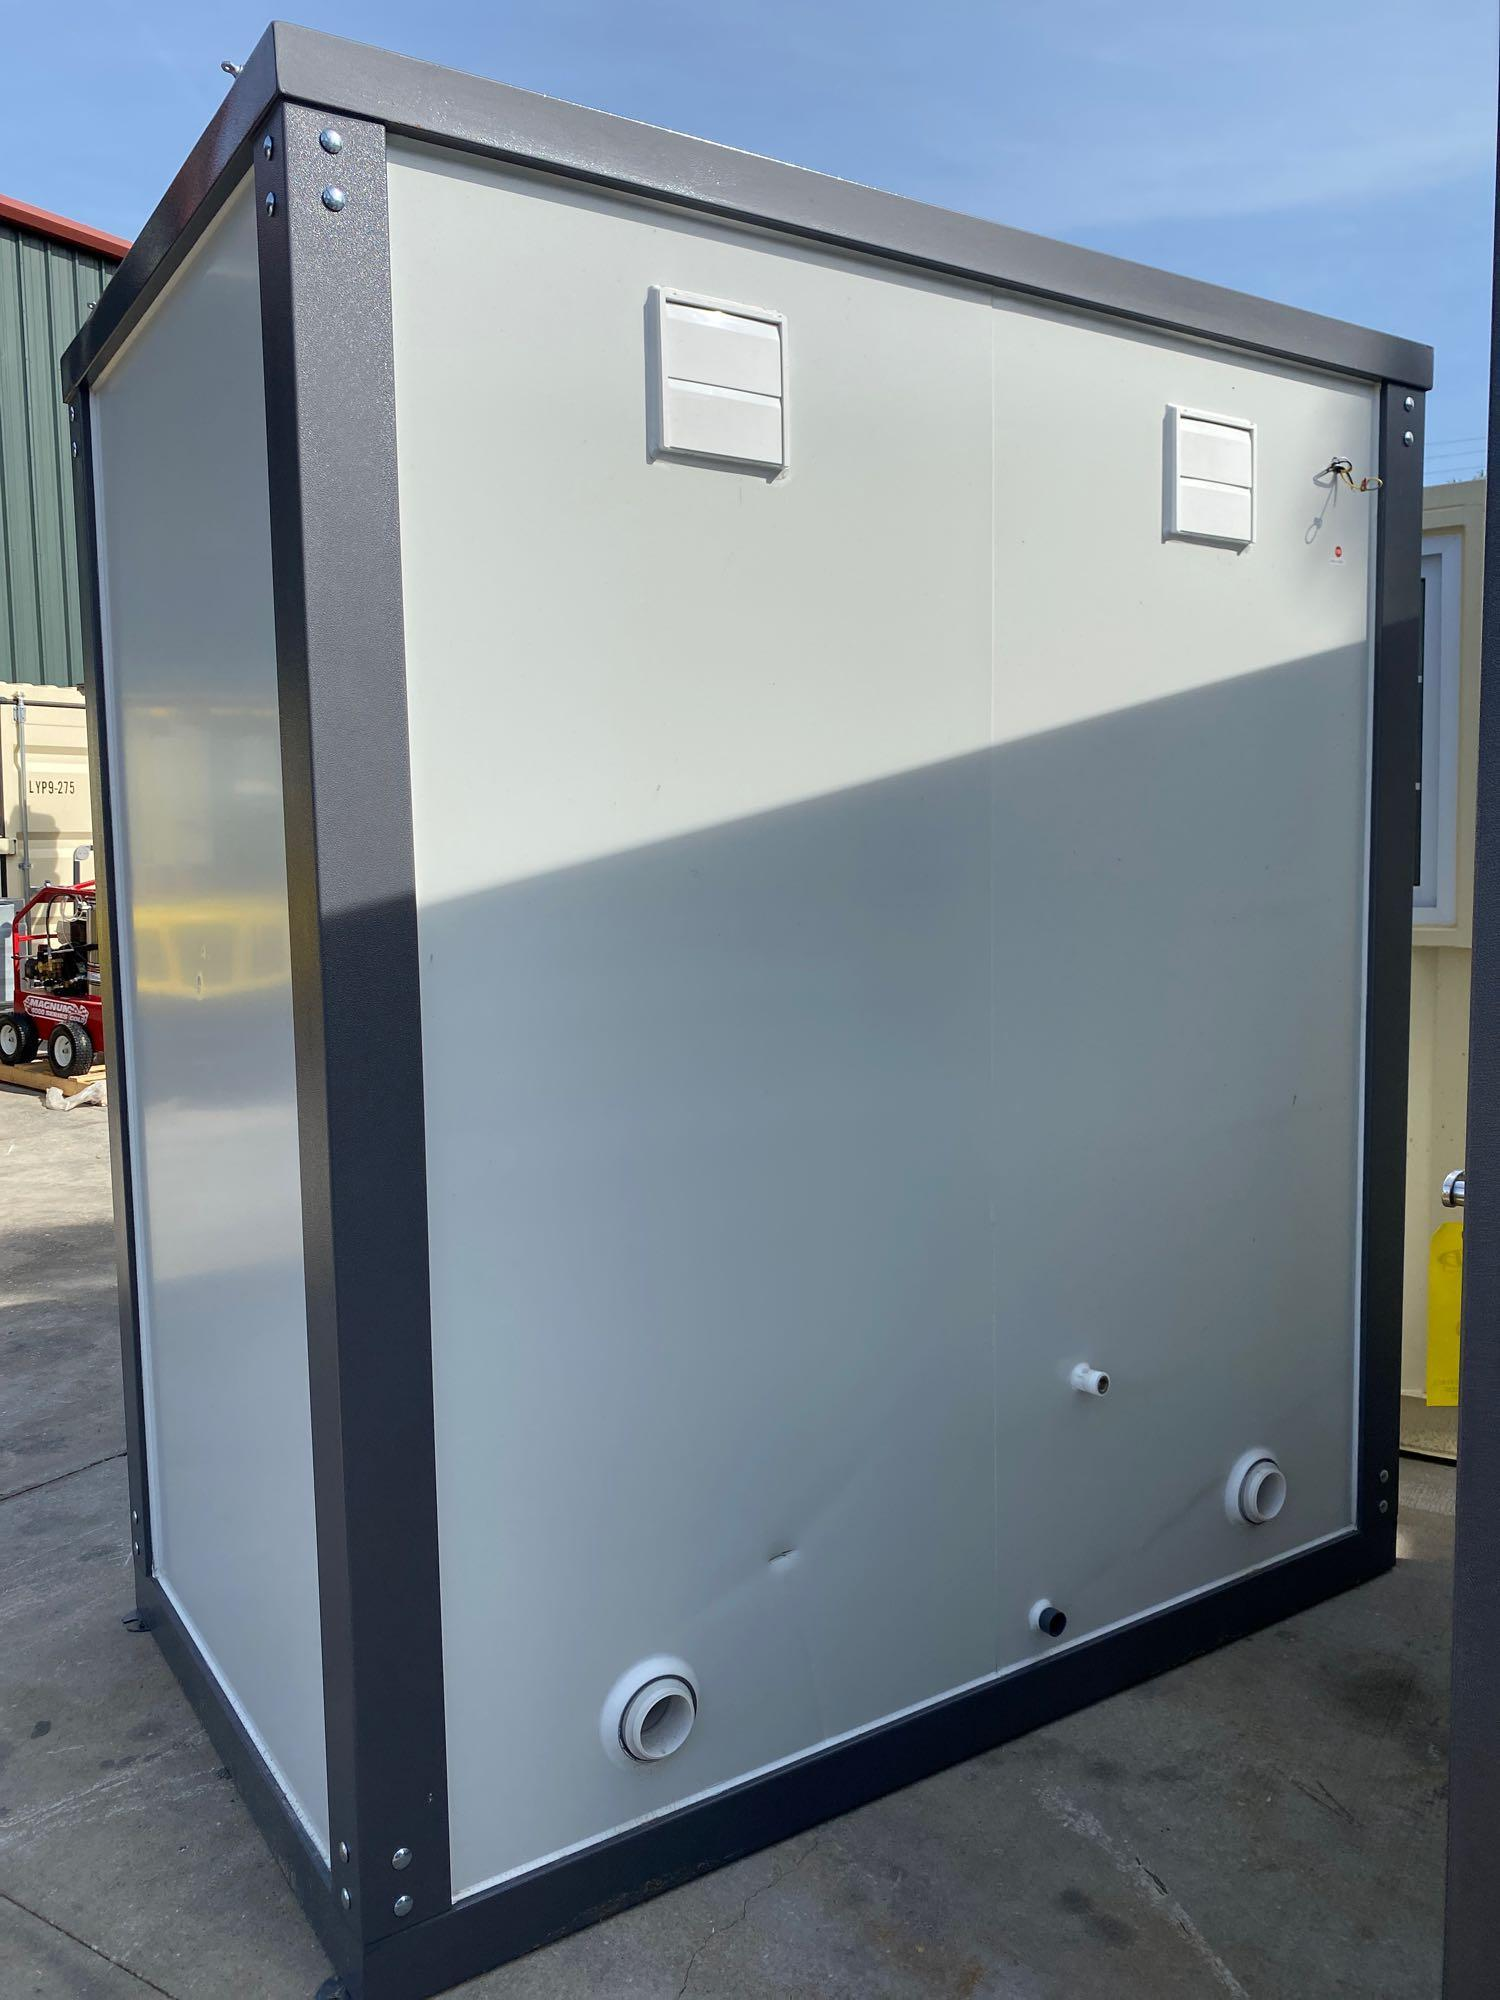 """NEW/UNUSED PORTABLE BATHROOM UNIT, TWO STALLS, PLUMBING AND ELECTRIC HOOKUP, 81"""" WIDE 90"""" TALL 51"""" D - Image 4 of 6"""